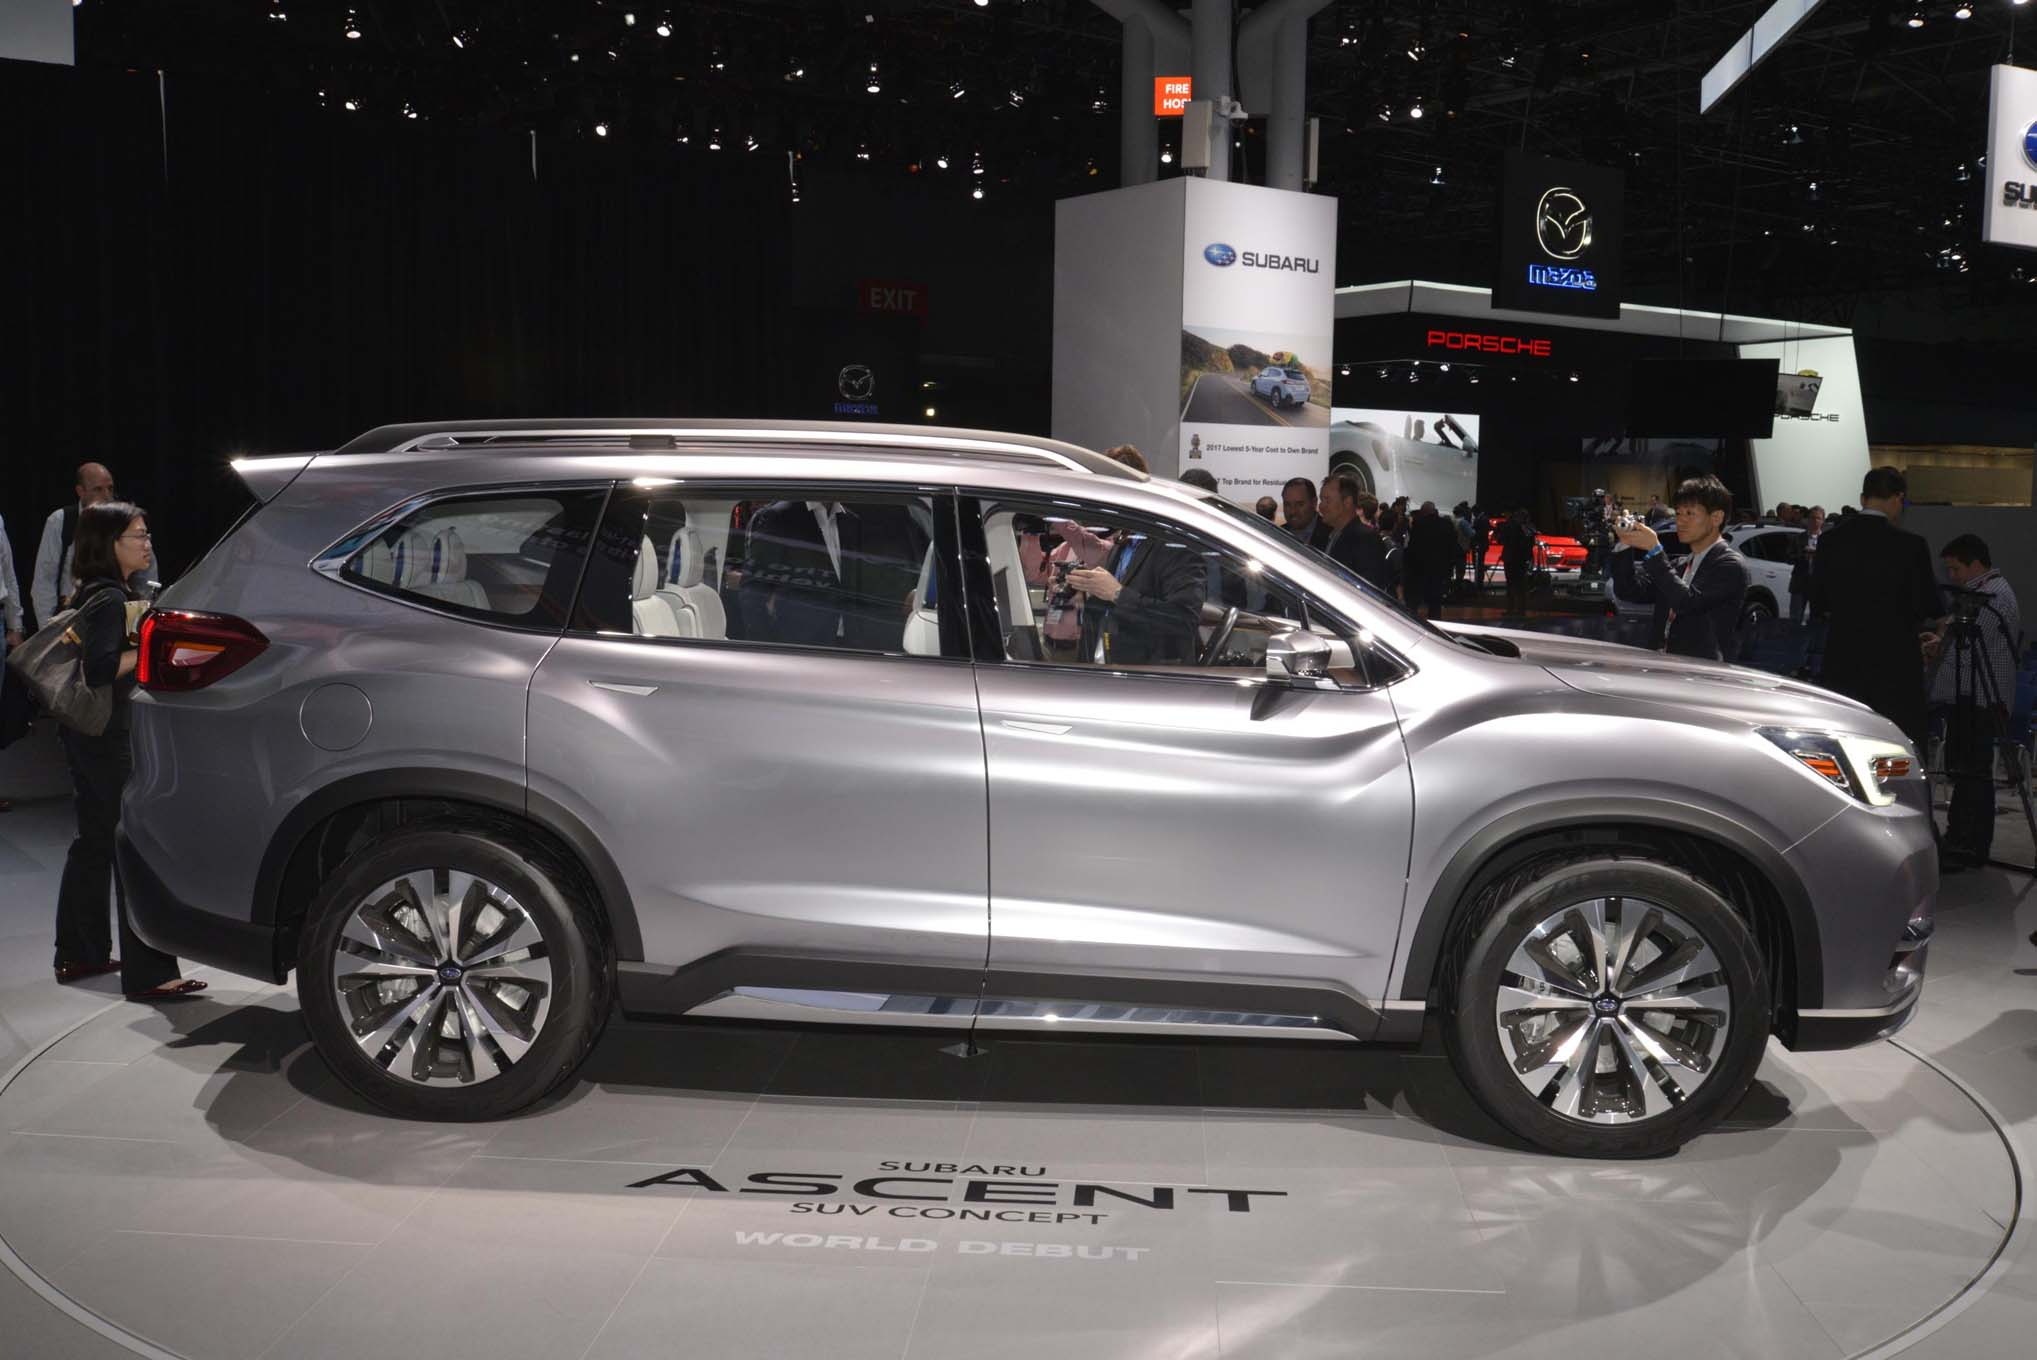 2018 Subaru Ascent Suv Revealed In New York The Drive